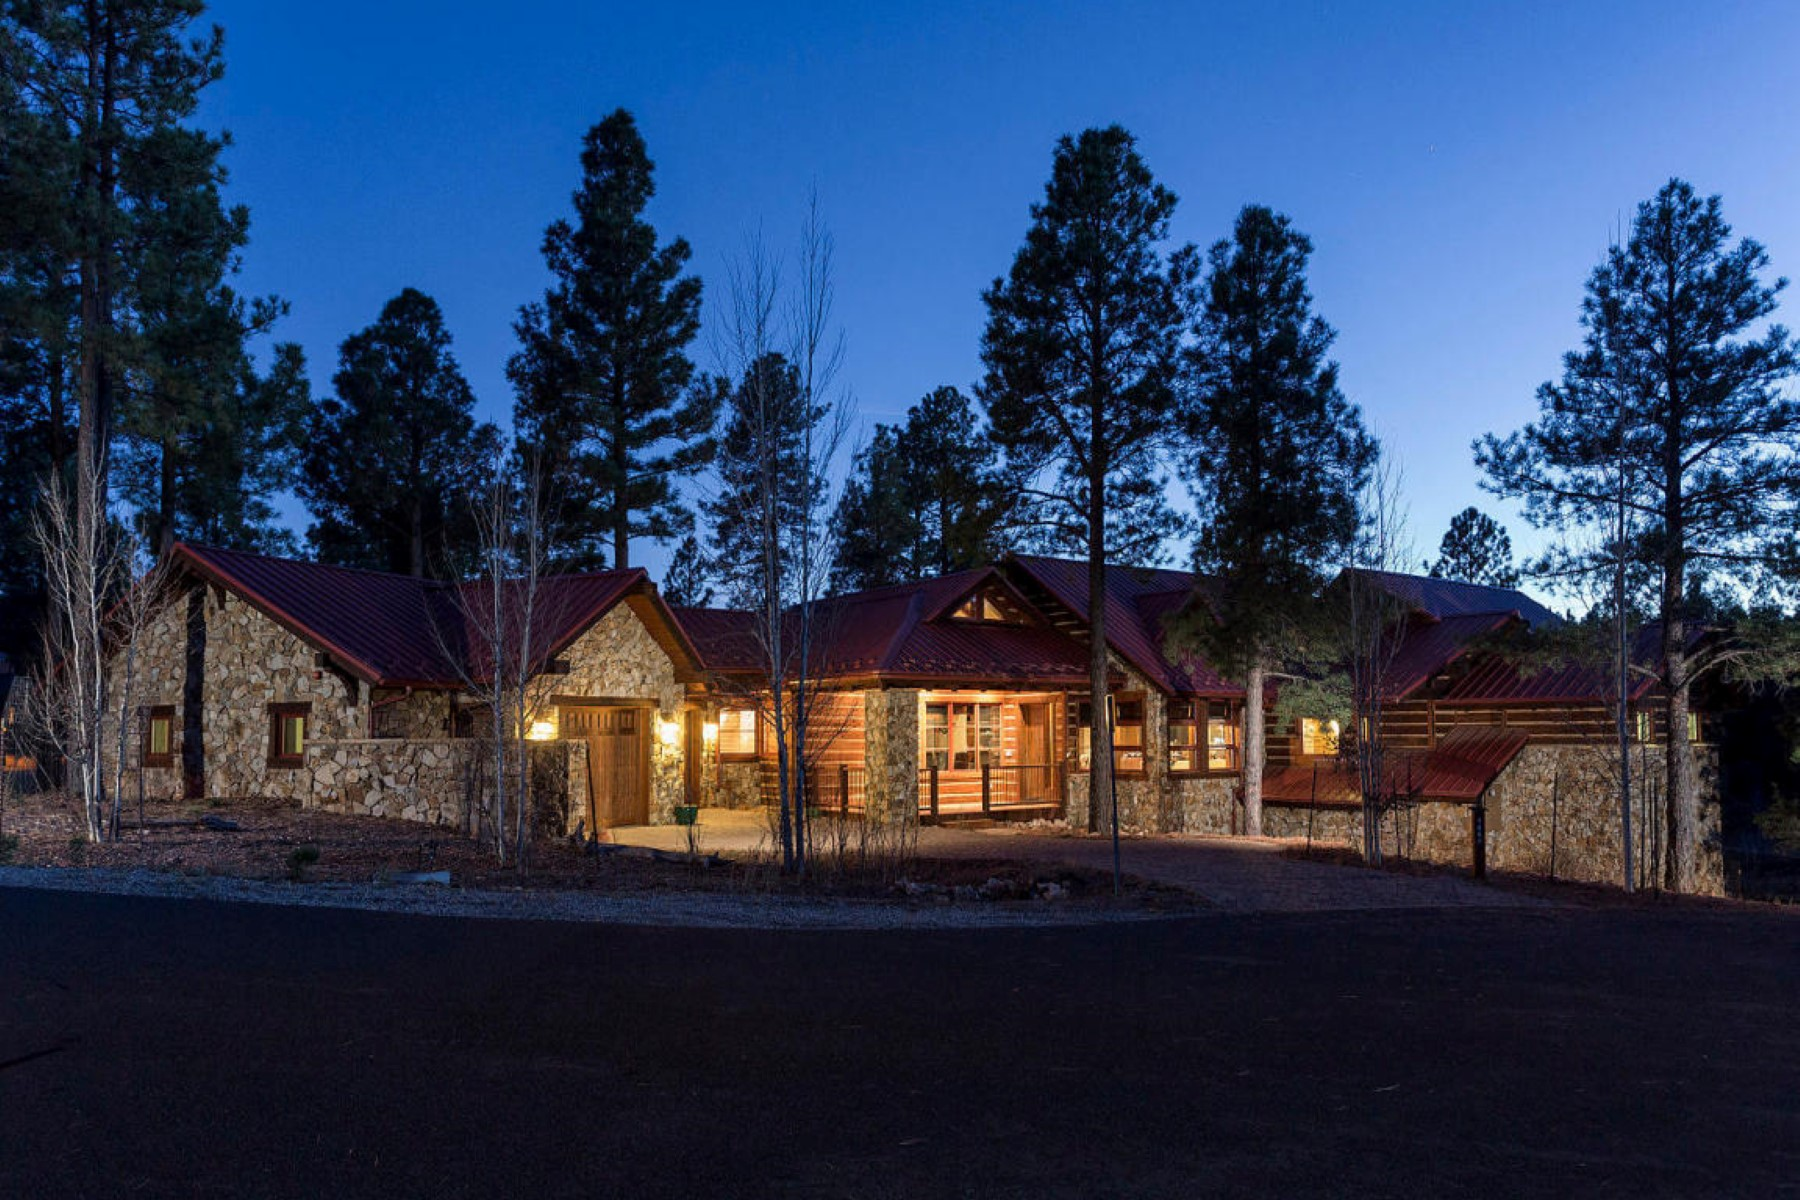 獨棟家庭住宅 為 出售 在 Incredible Luxury Mountain Home On a Prime Cul-de-Sac in Exclusive Pine Canyon 1887 E Marengo Court Flagstaff, 亞利桑那州, 86005 美國